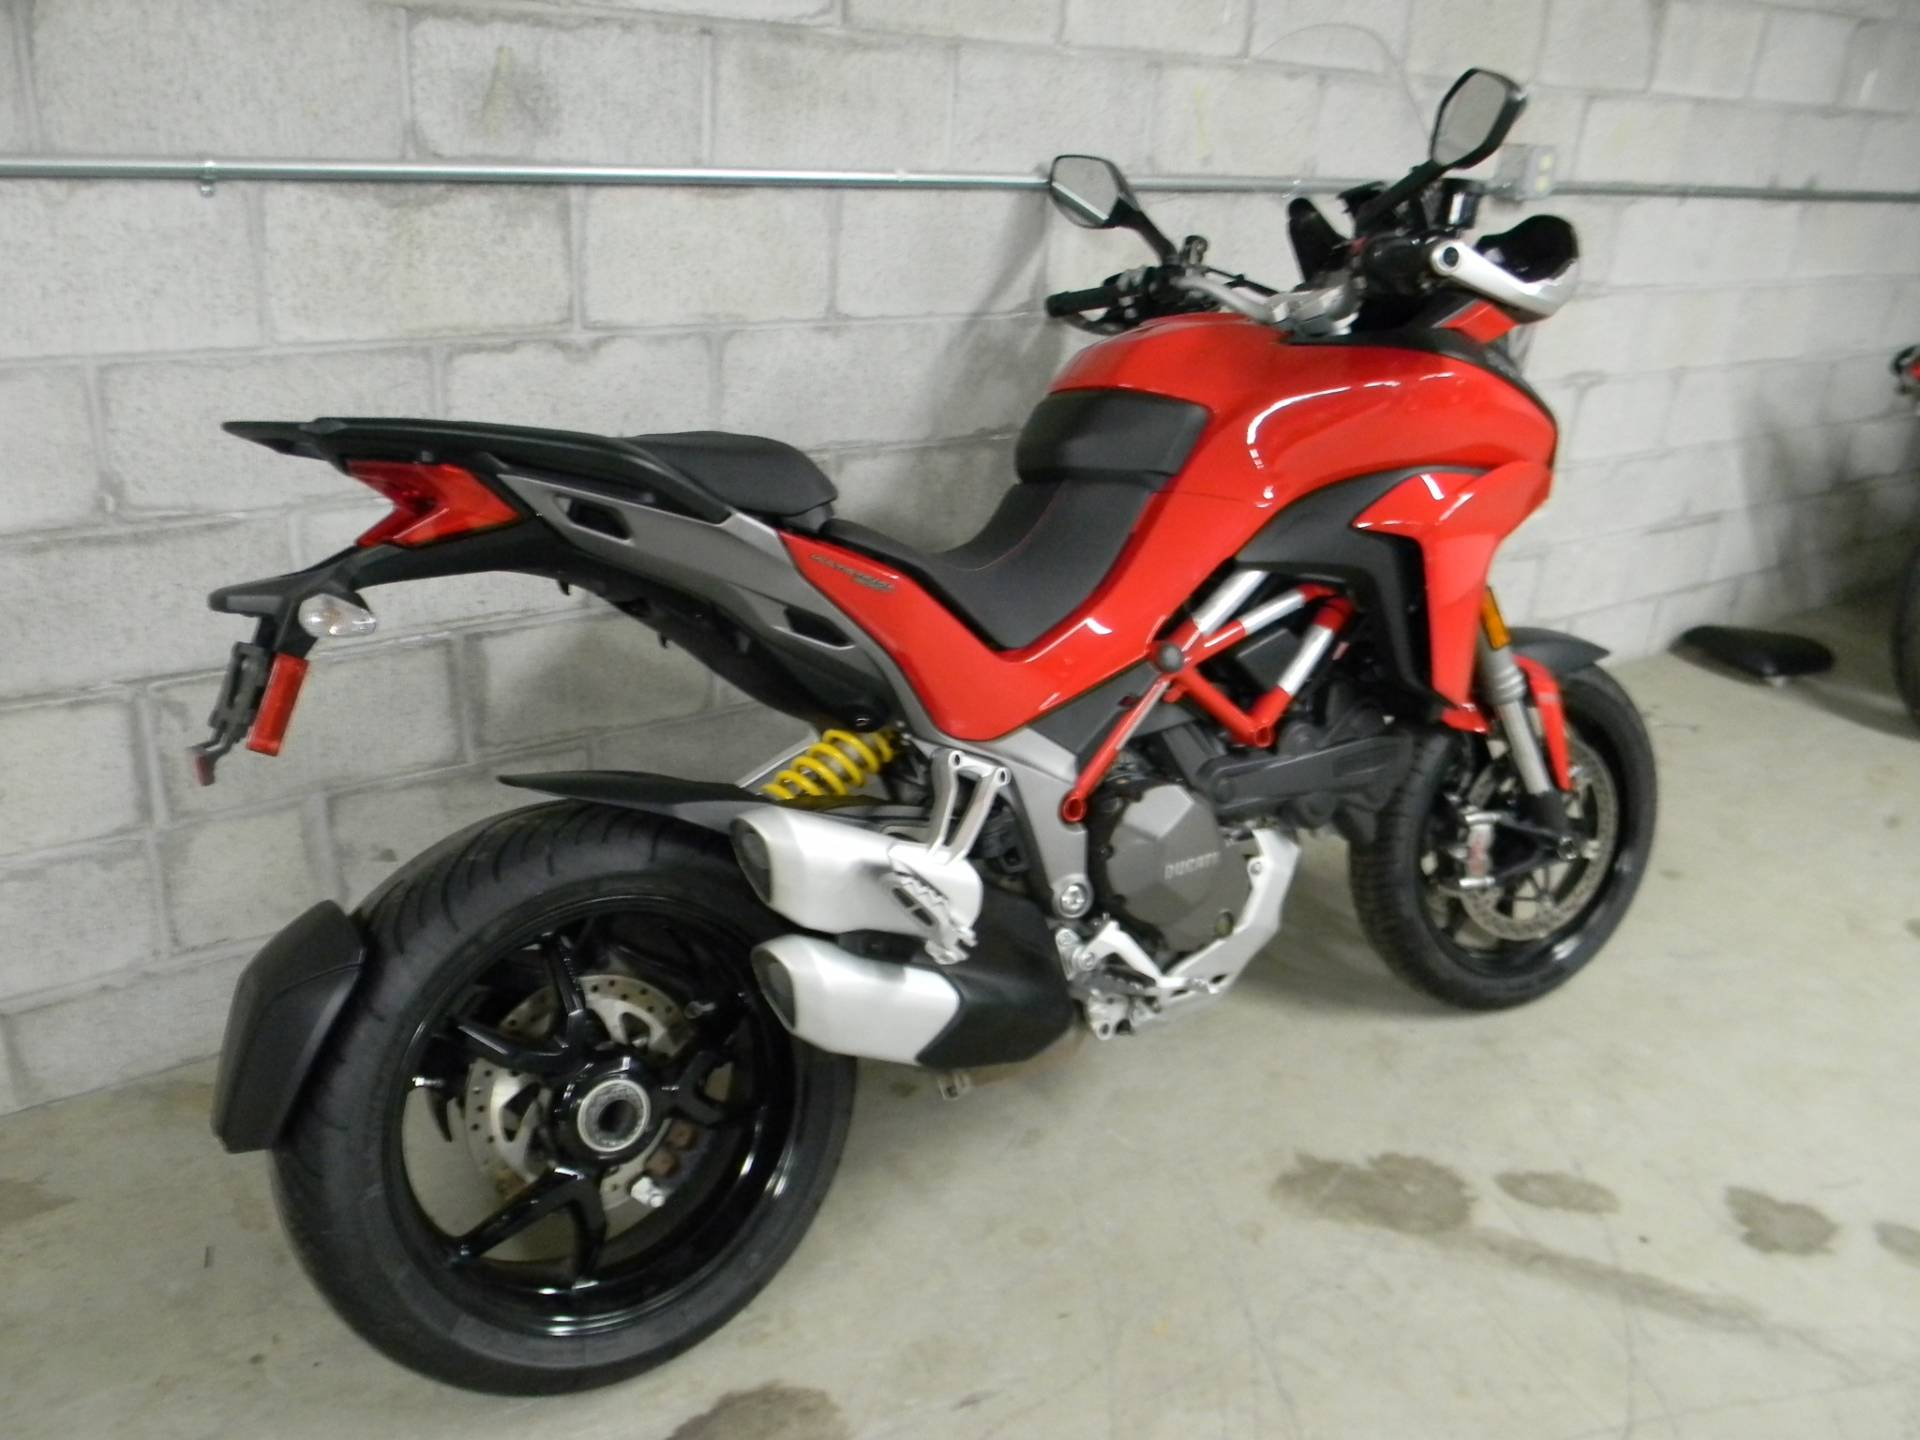 2015 Ducati Multistrada 1200 S in Springfield, Massachusetts